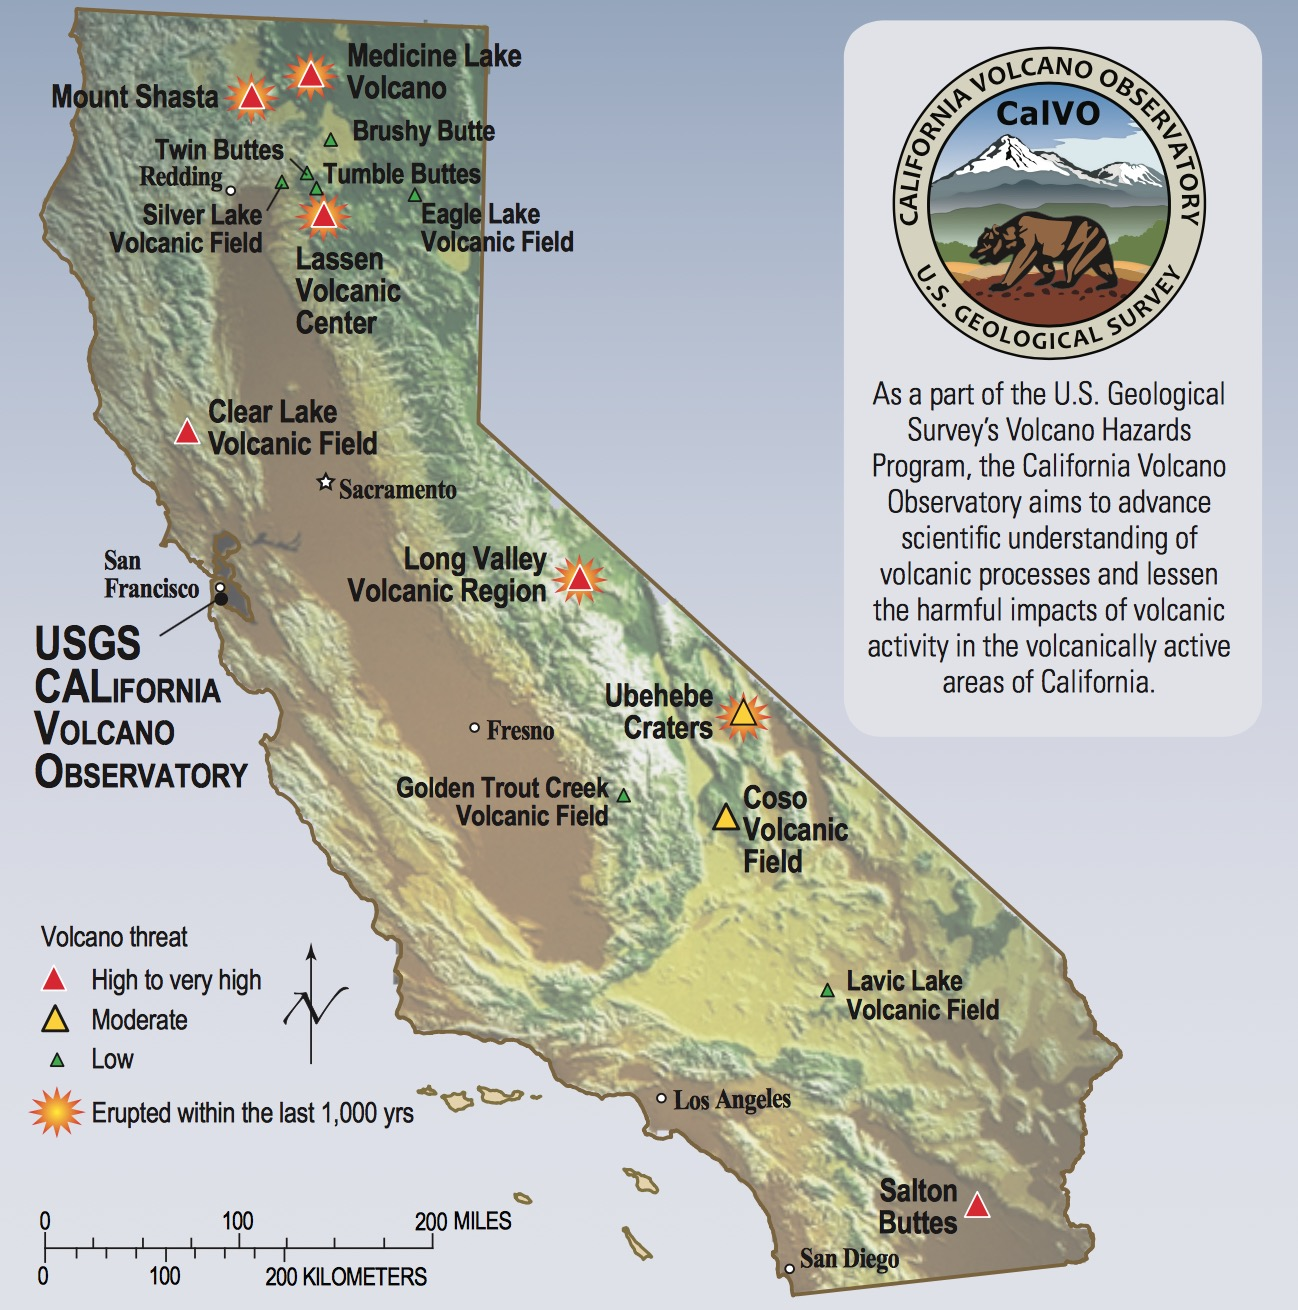 With 8 threatening volcanoes, USGS says California deserves close